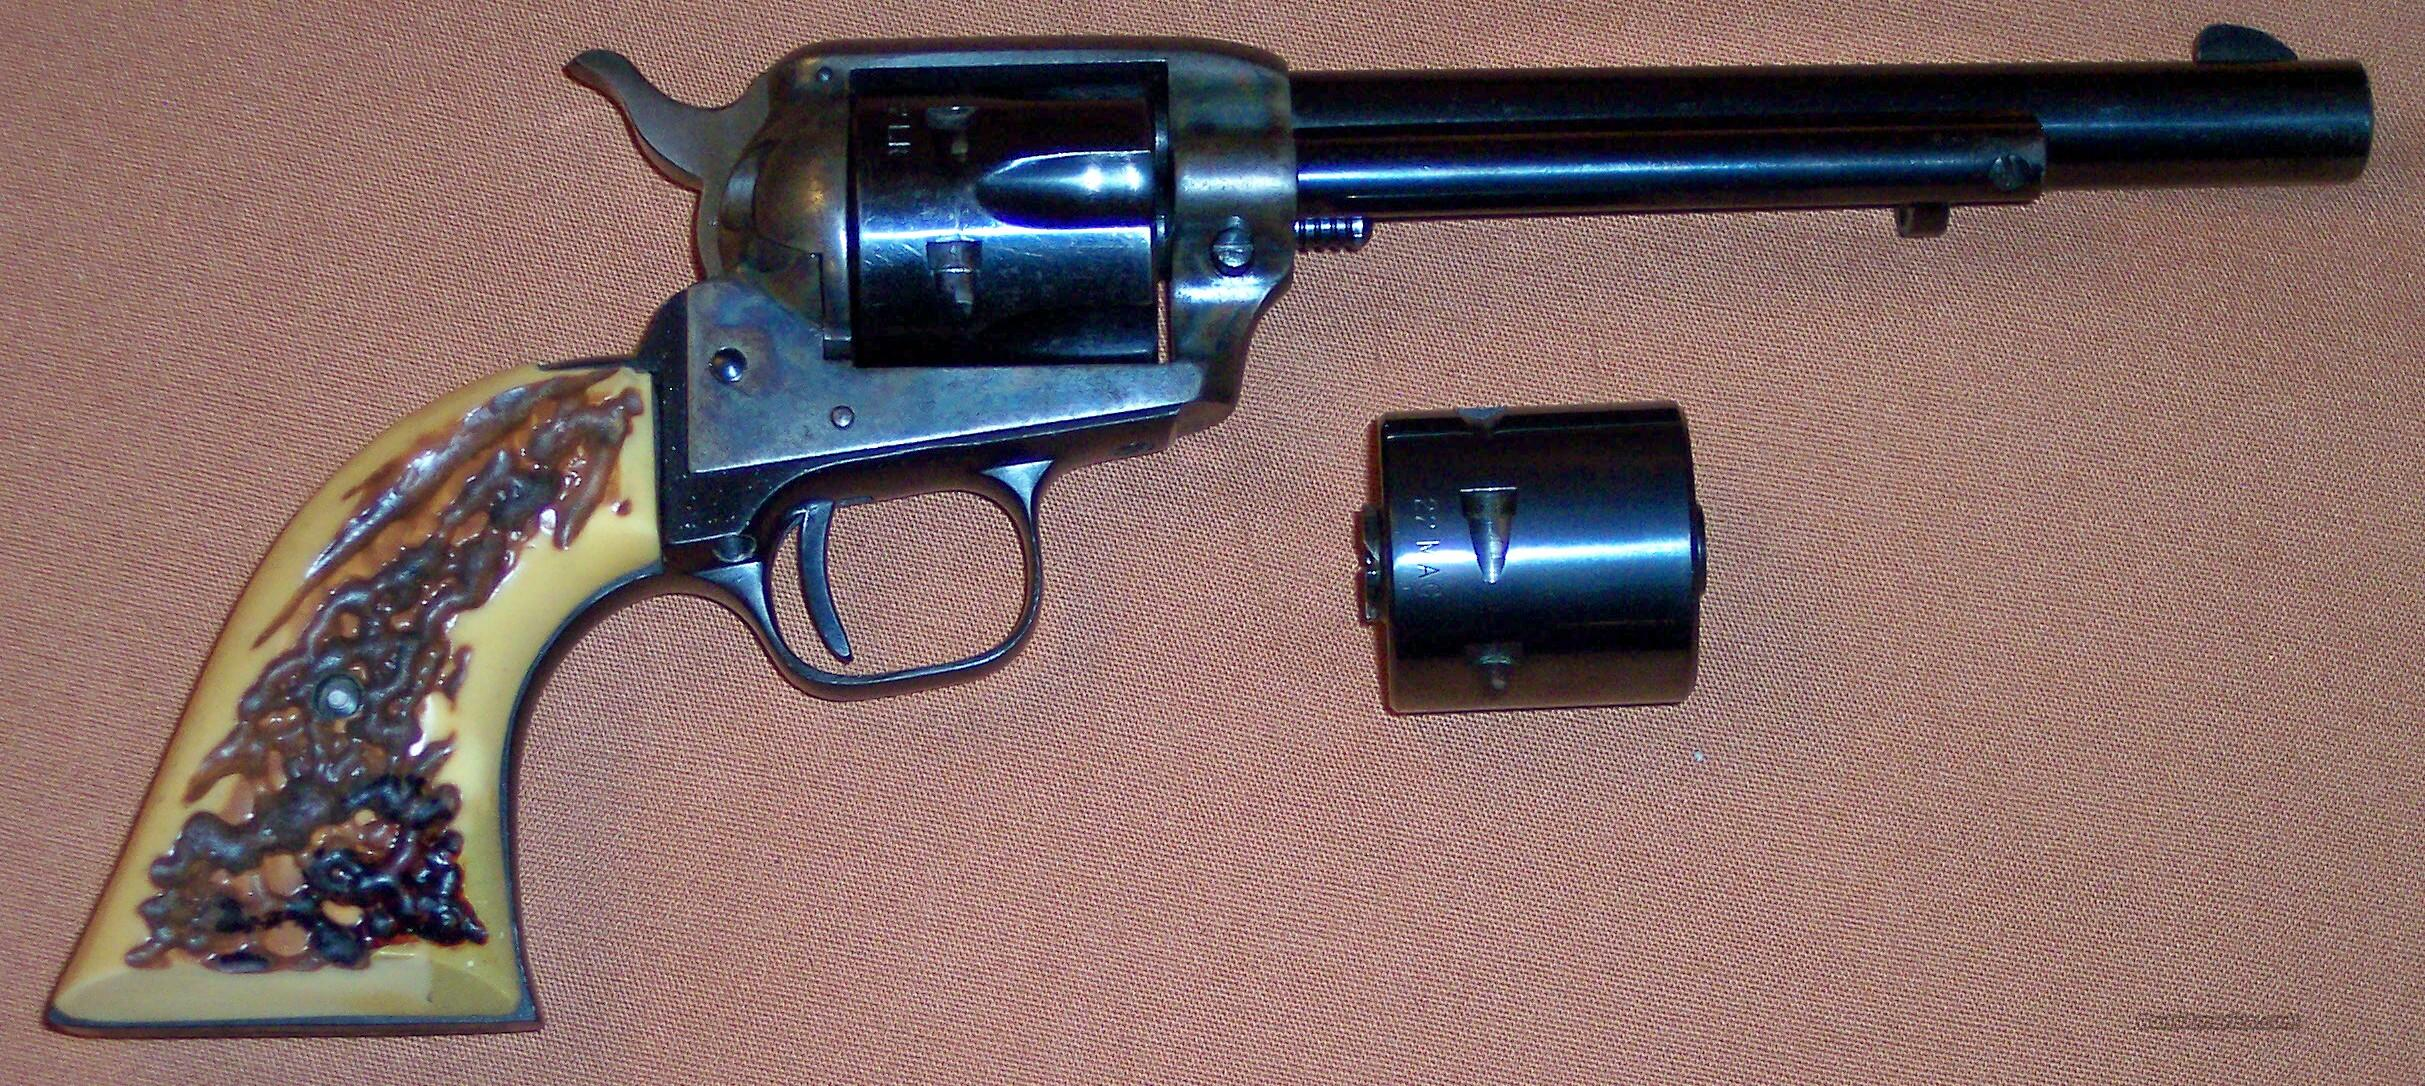 Colt Single Action Peacemaker .22/.22 Mag. 6: Barrel with Holster  Guns > Pistols > Colt Single Action Revolvers - Modern (22 Cal.)